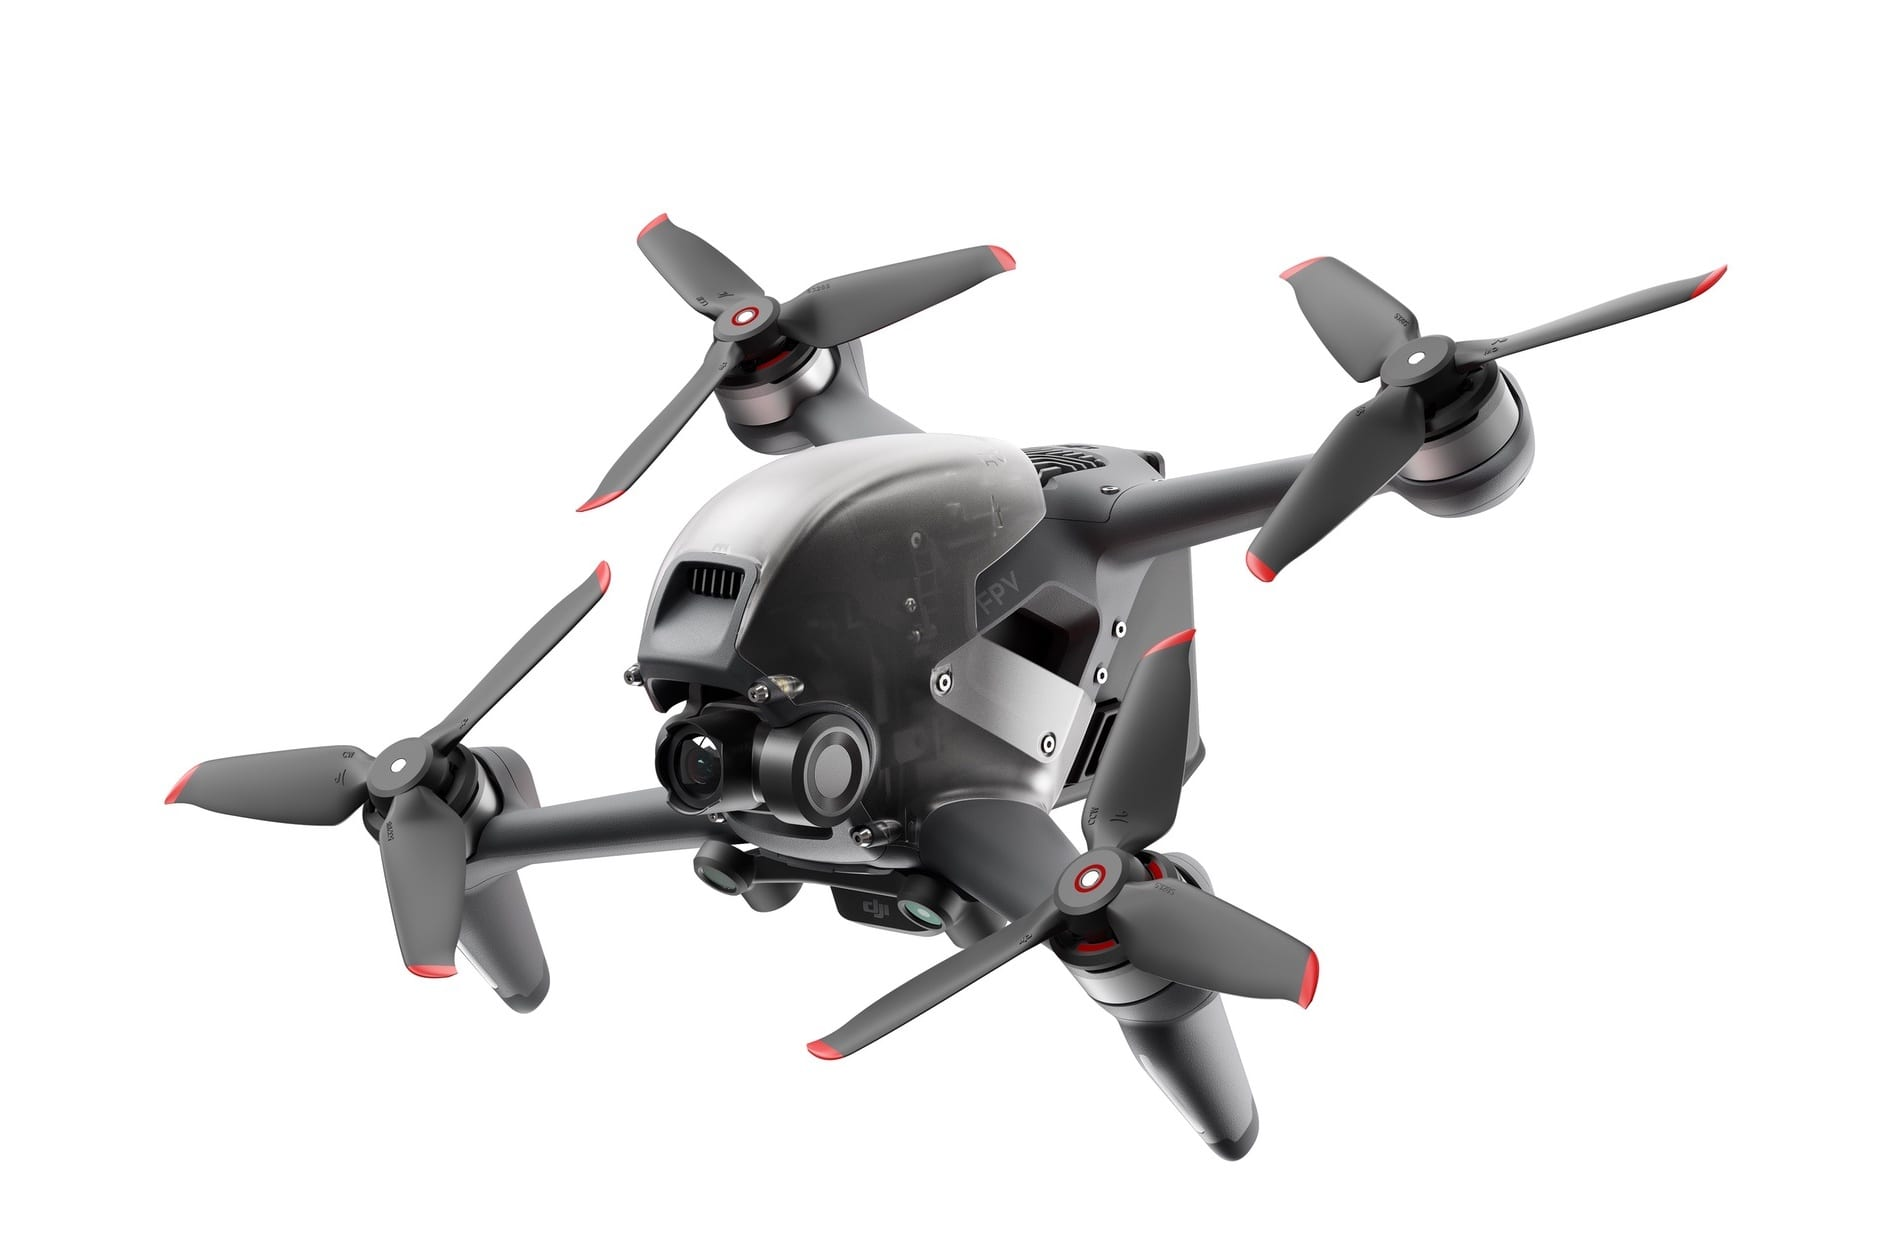 DJI FPV drone official launch and announcement 0104